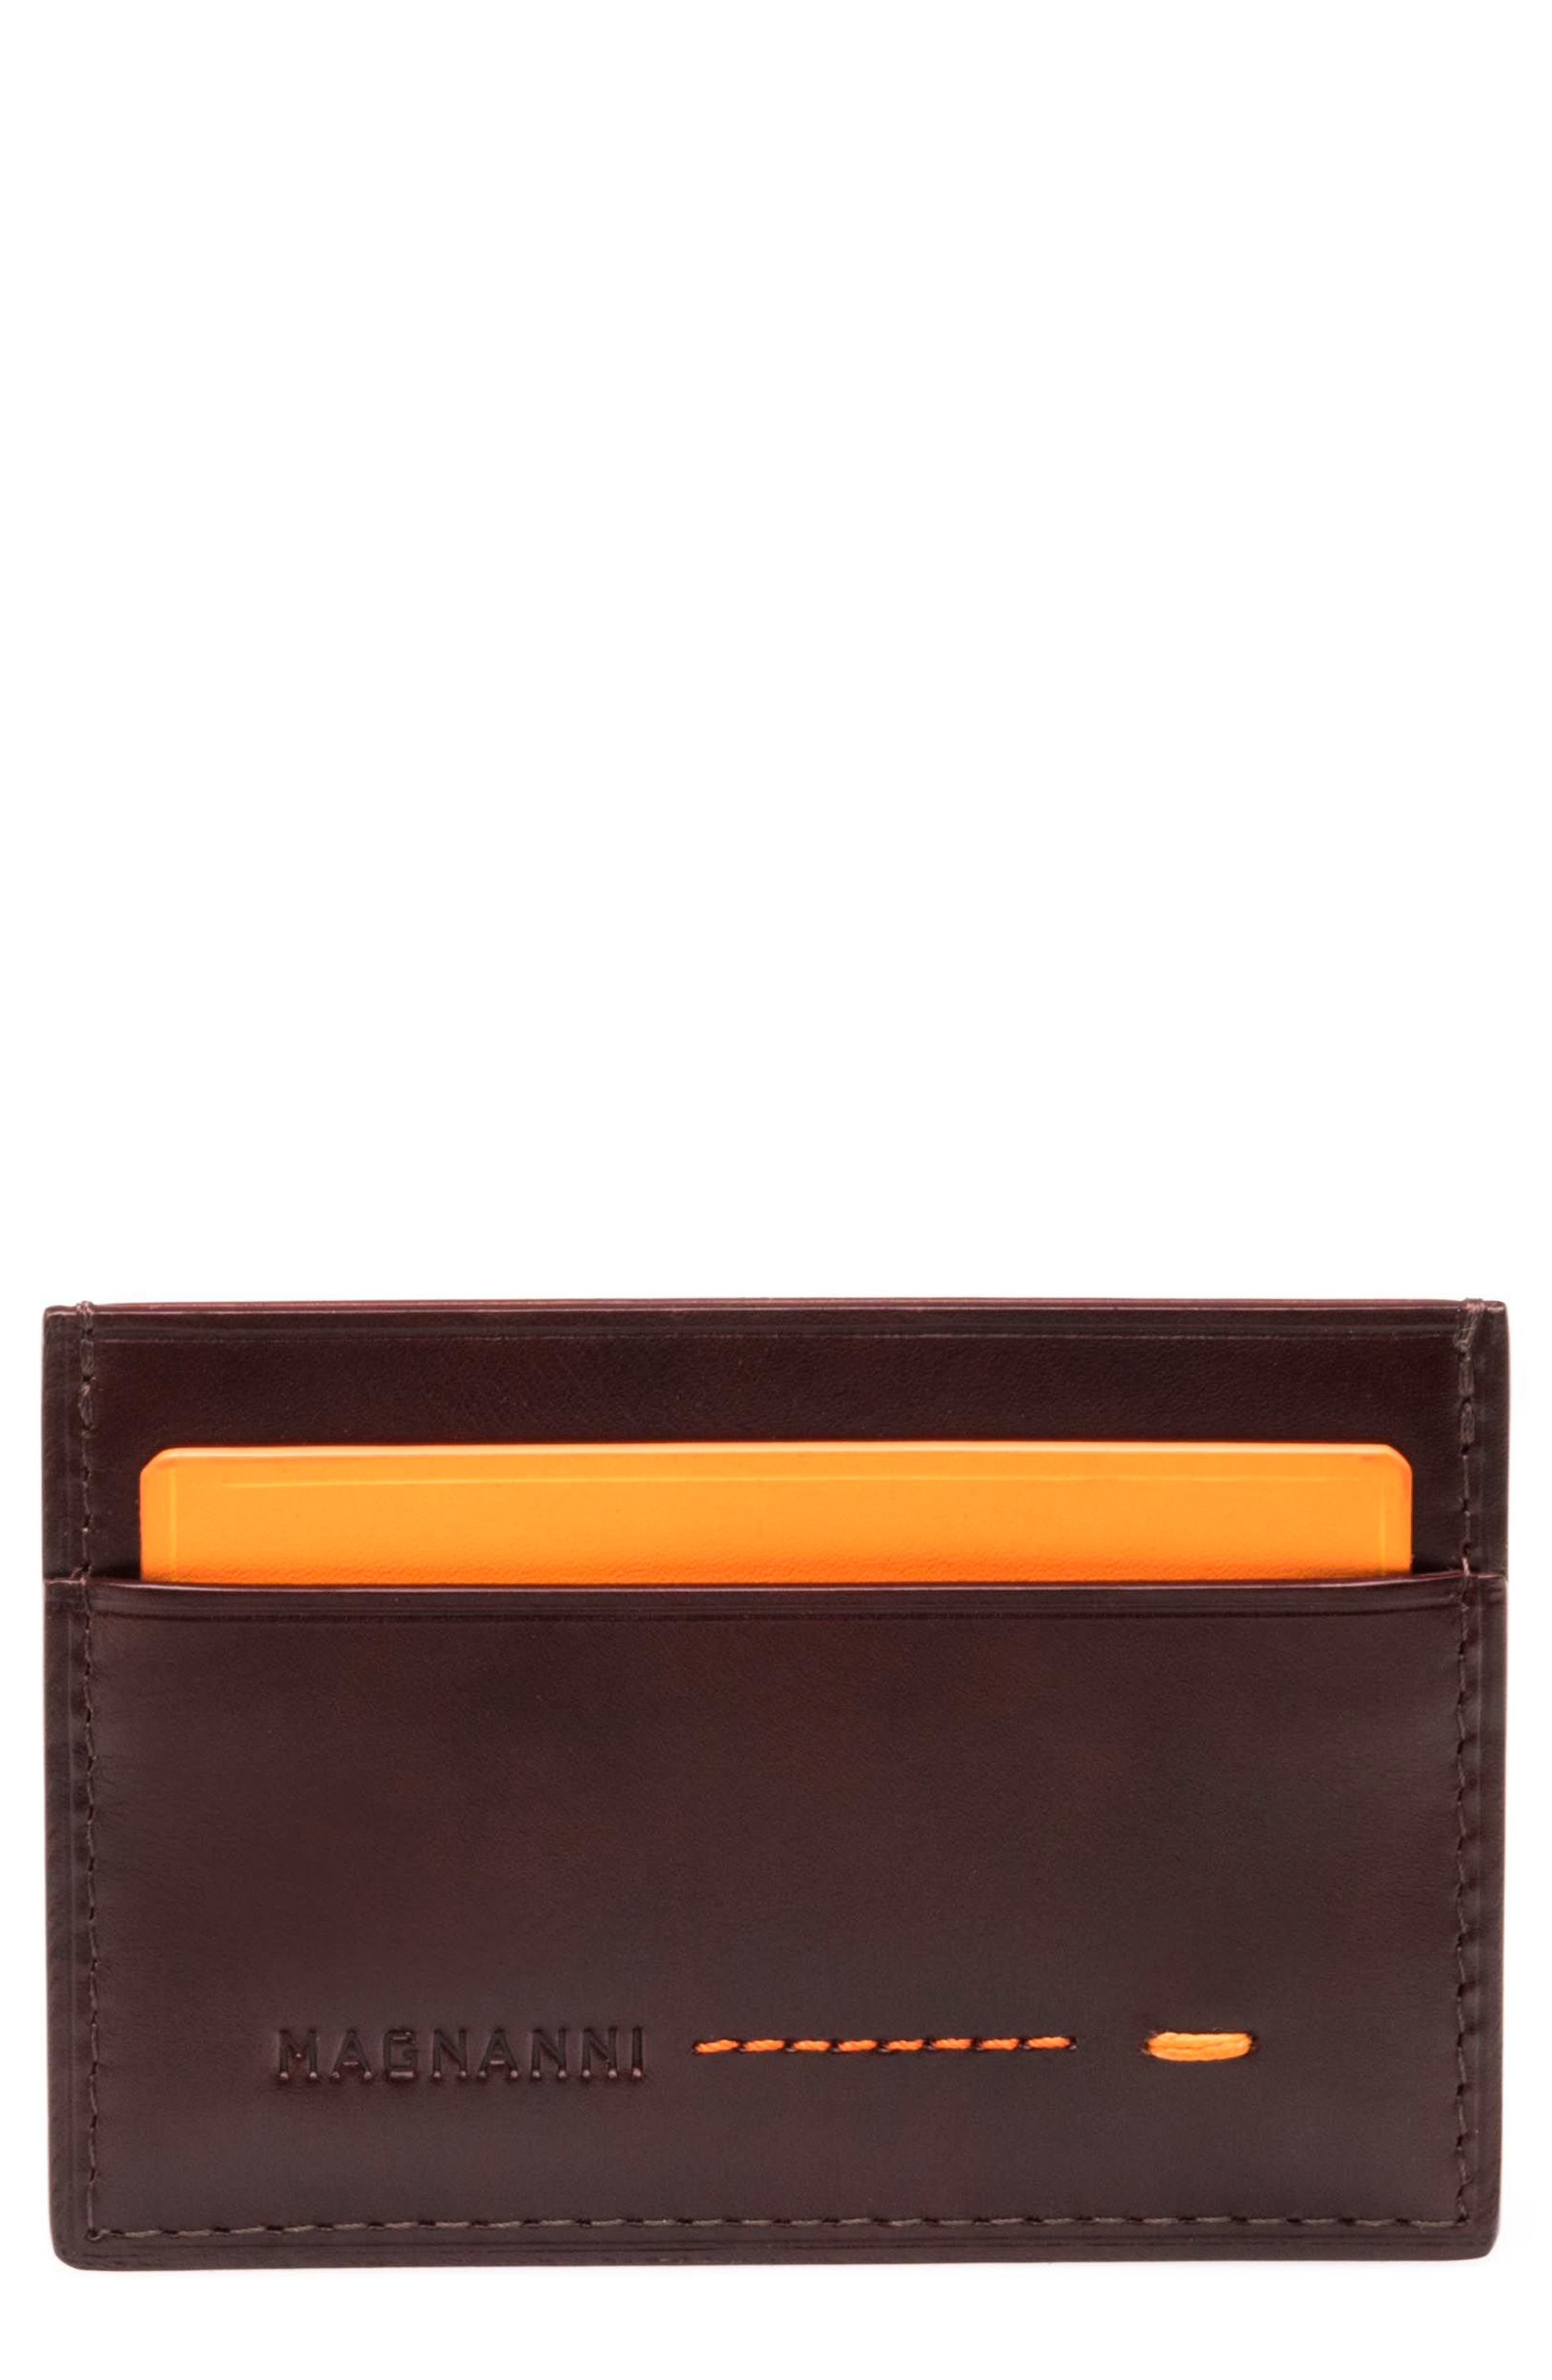 Leather Card Case,                             Main thumbnail 1, color,                             210